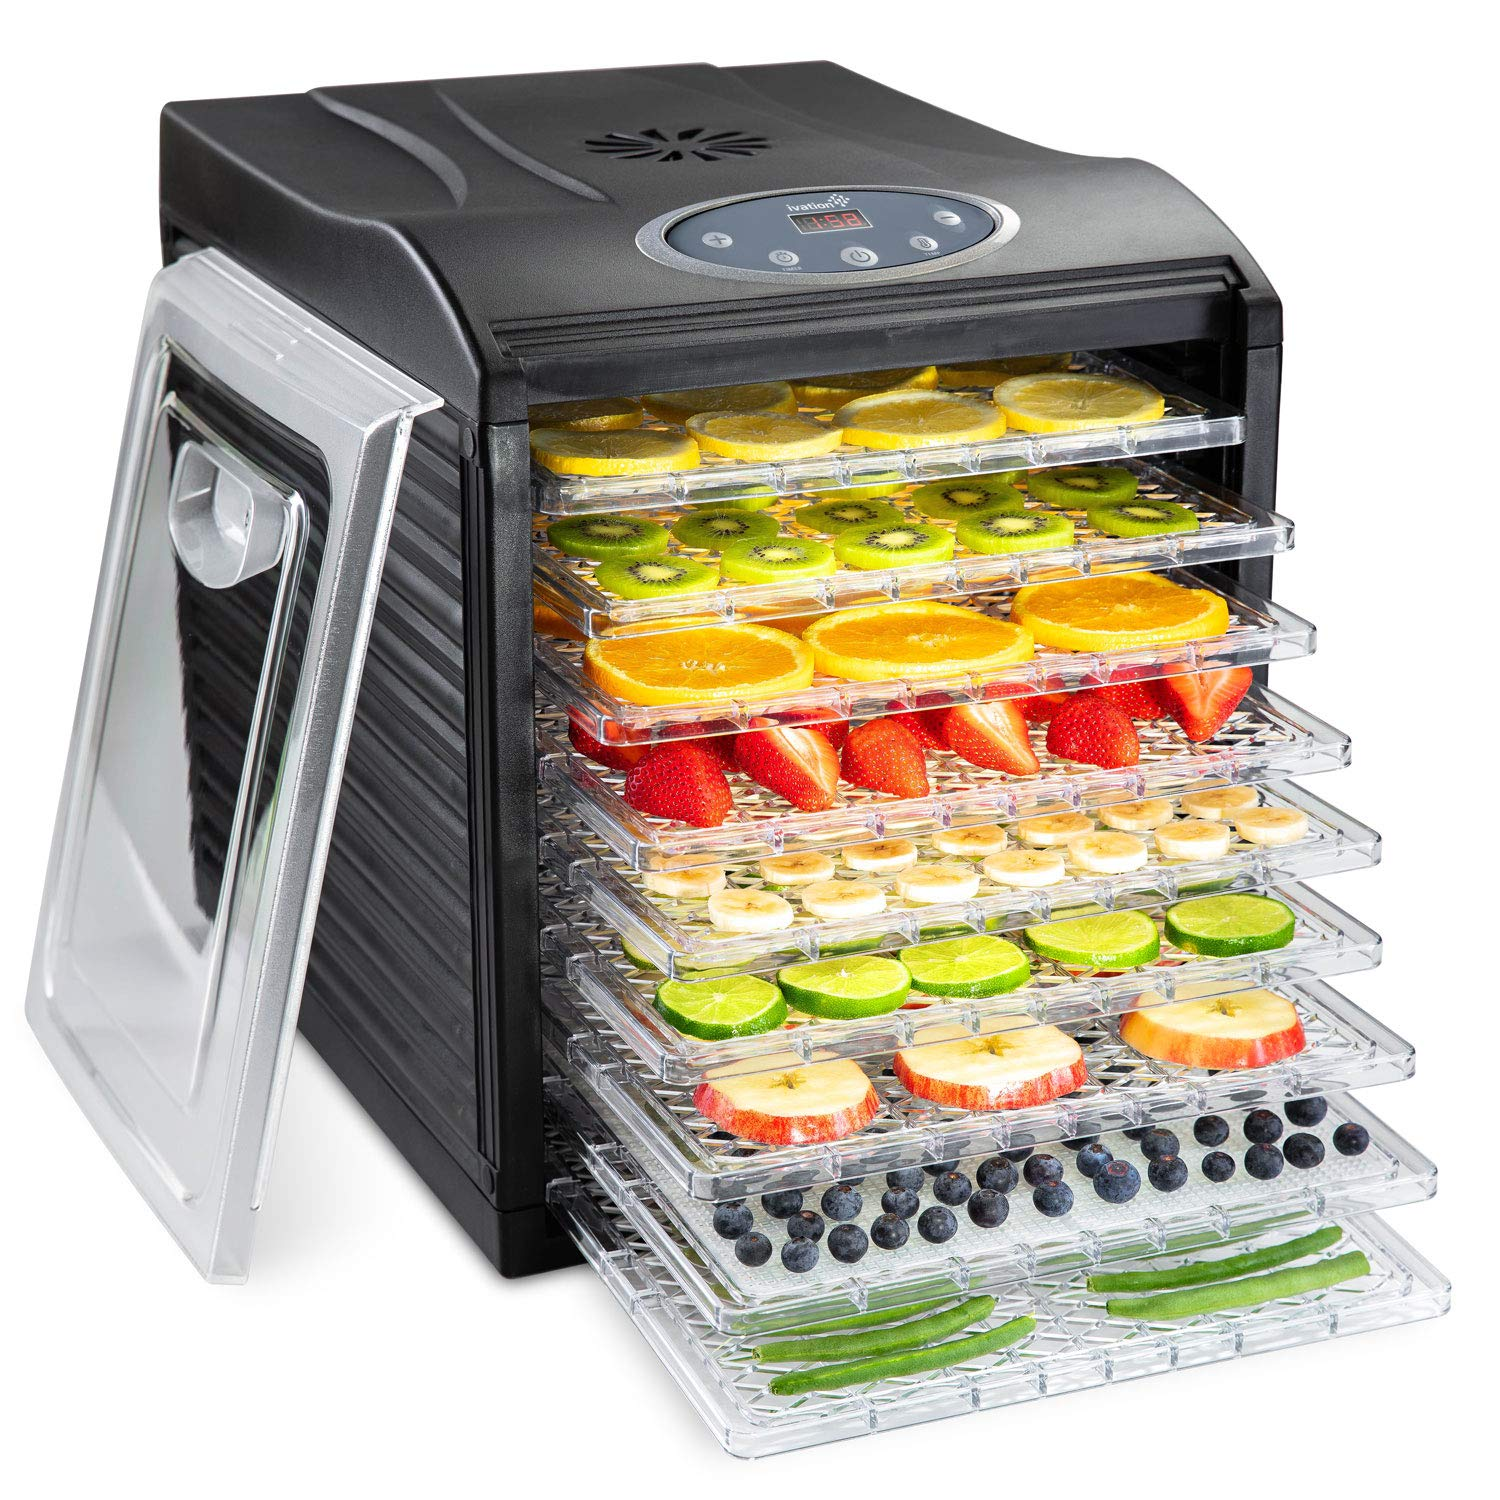 Ivation 9 Tray Premium Electric Food Dehydrator Machine - 600w - Digital Timer & Temperature Control with Auto Shutoff - 95ºF to 158ºF for Drying Beef Jerky, Fruits, Vegetables & Nuts, BPA Free by Ivation